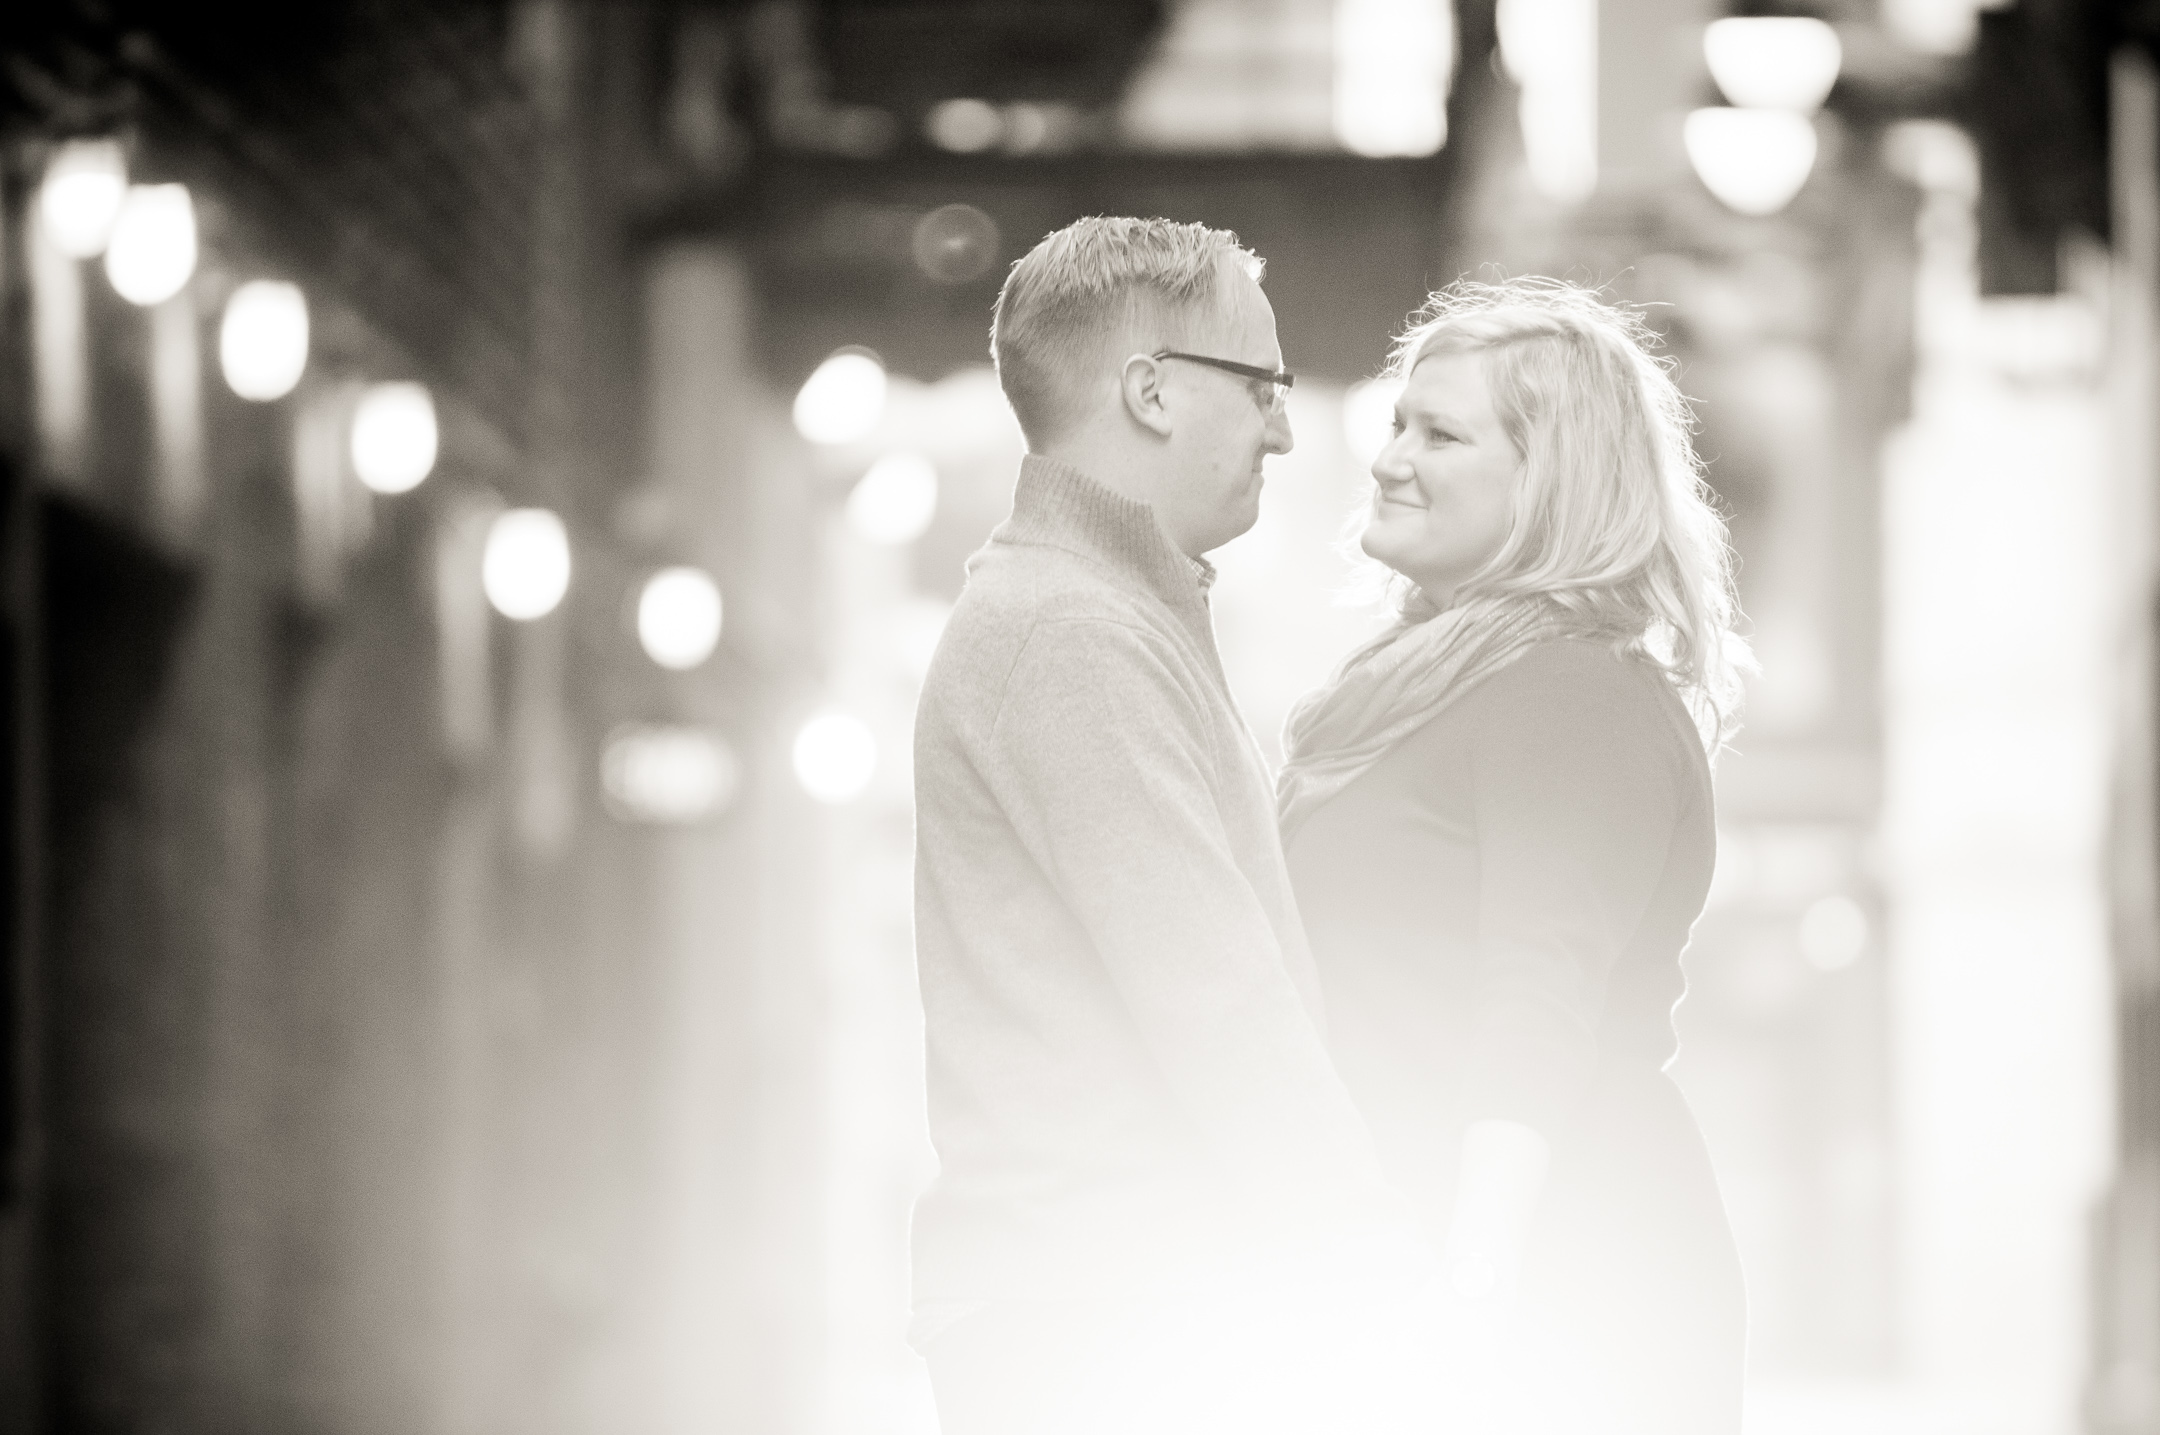 Morgan + Dan | #ChicagoEngagement #Prewedding Session